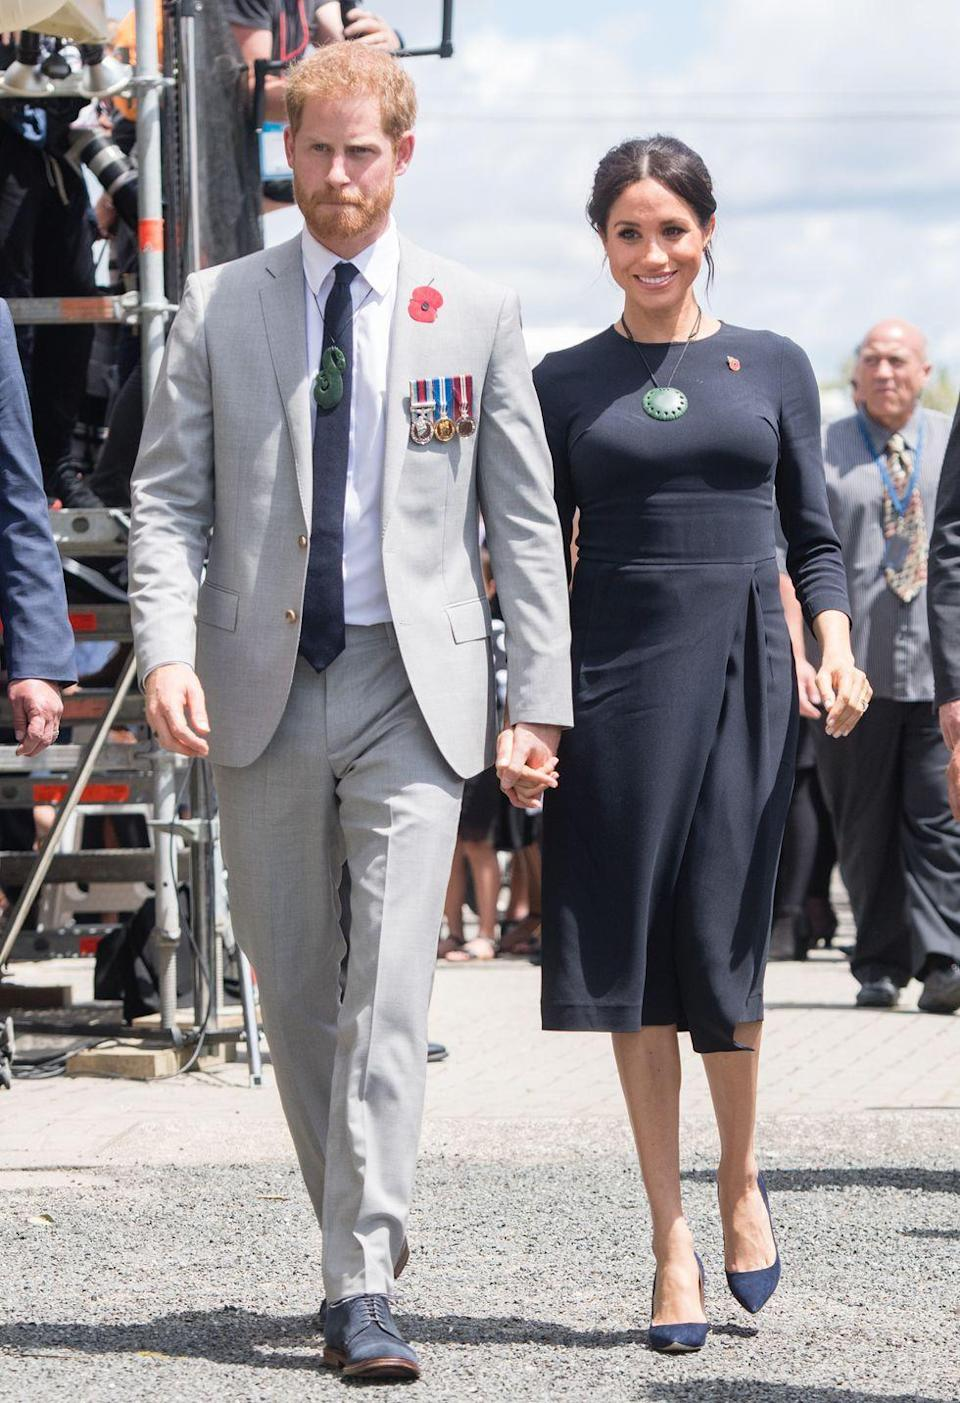 """<p>Meghan <a href=""""https://www.townandcountrymag.com/style/fashion-trends/a24450173/meghan-markle-stella-mccartney-navy-midi-dress-final-day-royal-tour-new-zealand/"""" rel=""""nofollow noopener"""" target=""""_blank"""" data-ylk=""""slk:wore a navy blue midi"""" class=""""link rapid-noclick-resp"""">wore a navy blue midi</a> dress by Stella McCartney to kick off the last day of their royal tour. The Ducehss also wore a pair of Manolo pumps.</p><p><a class=""""link rapid-noclick-resp"""" href=""""https://www.barneys.com/product/manolo-blahnik-bb-pumps-503345489.html"""" rel=""""nofollow noopener"""" target=""""_blank"""" data-ylk=""""slk:SHOP NOW"""">SHOP NOW</a> <em>Manolo Blahnik Pumps, $625</em></p>"""